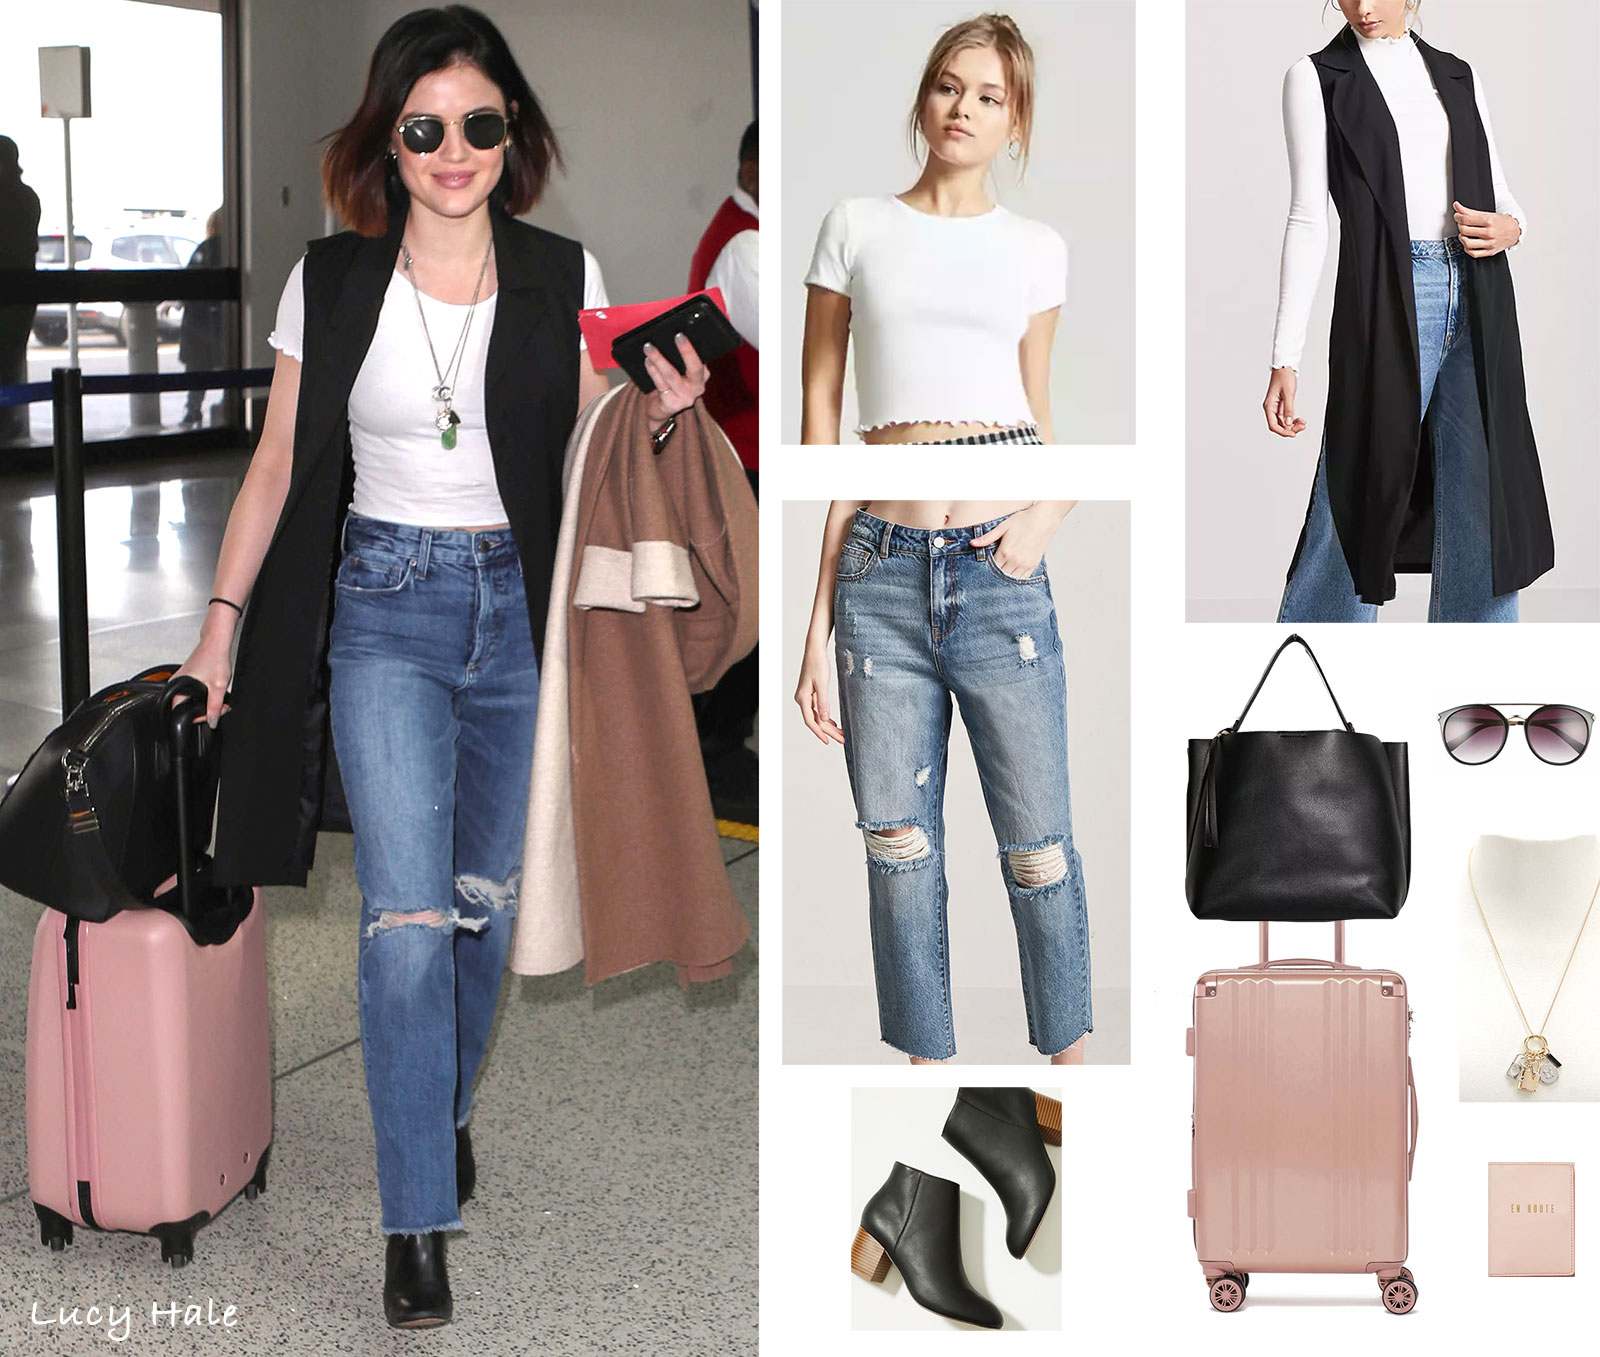 blue-med-boyfriend-jeans-white-tee-necklace-pend-lob-brun-sun-black-vest-tailor-black-shoe-booties-lucyhale-spring-summer-lunch.jpg